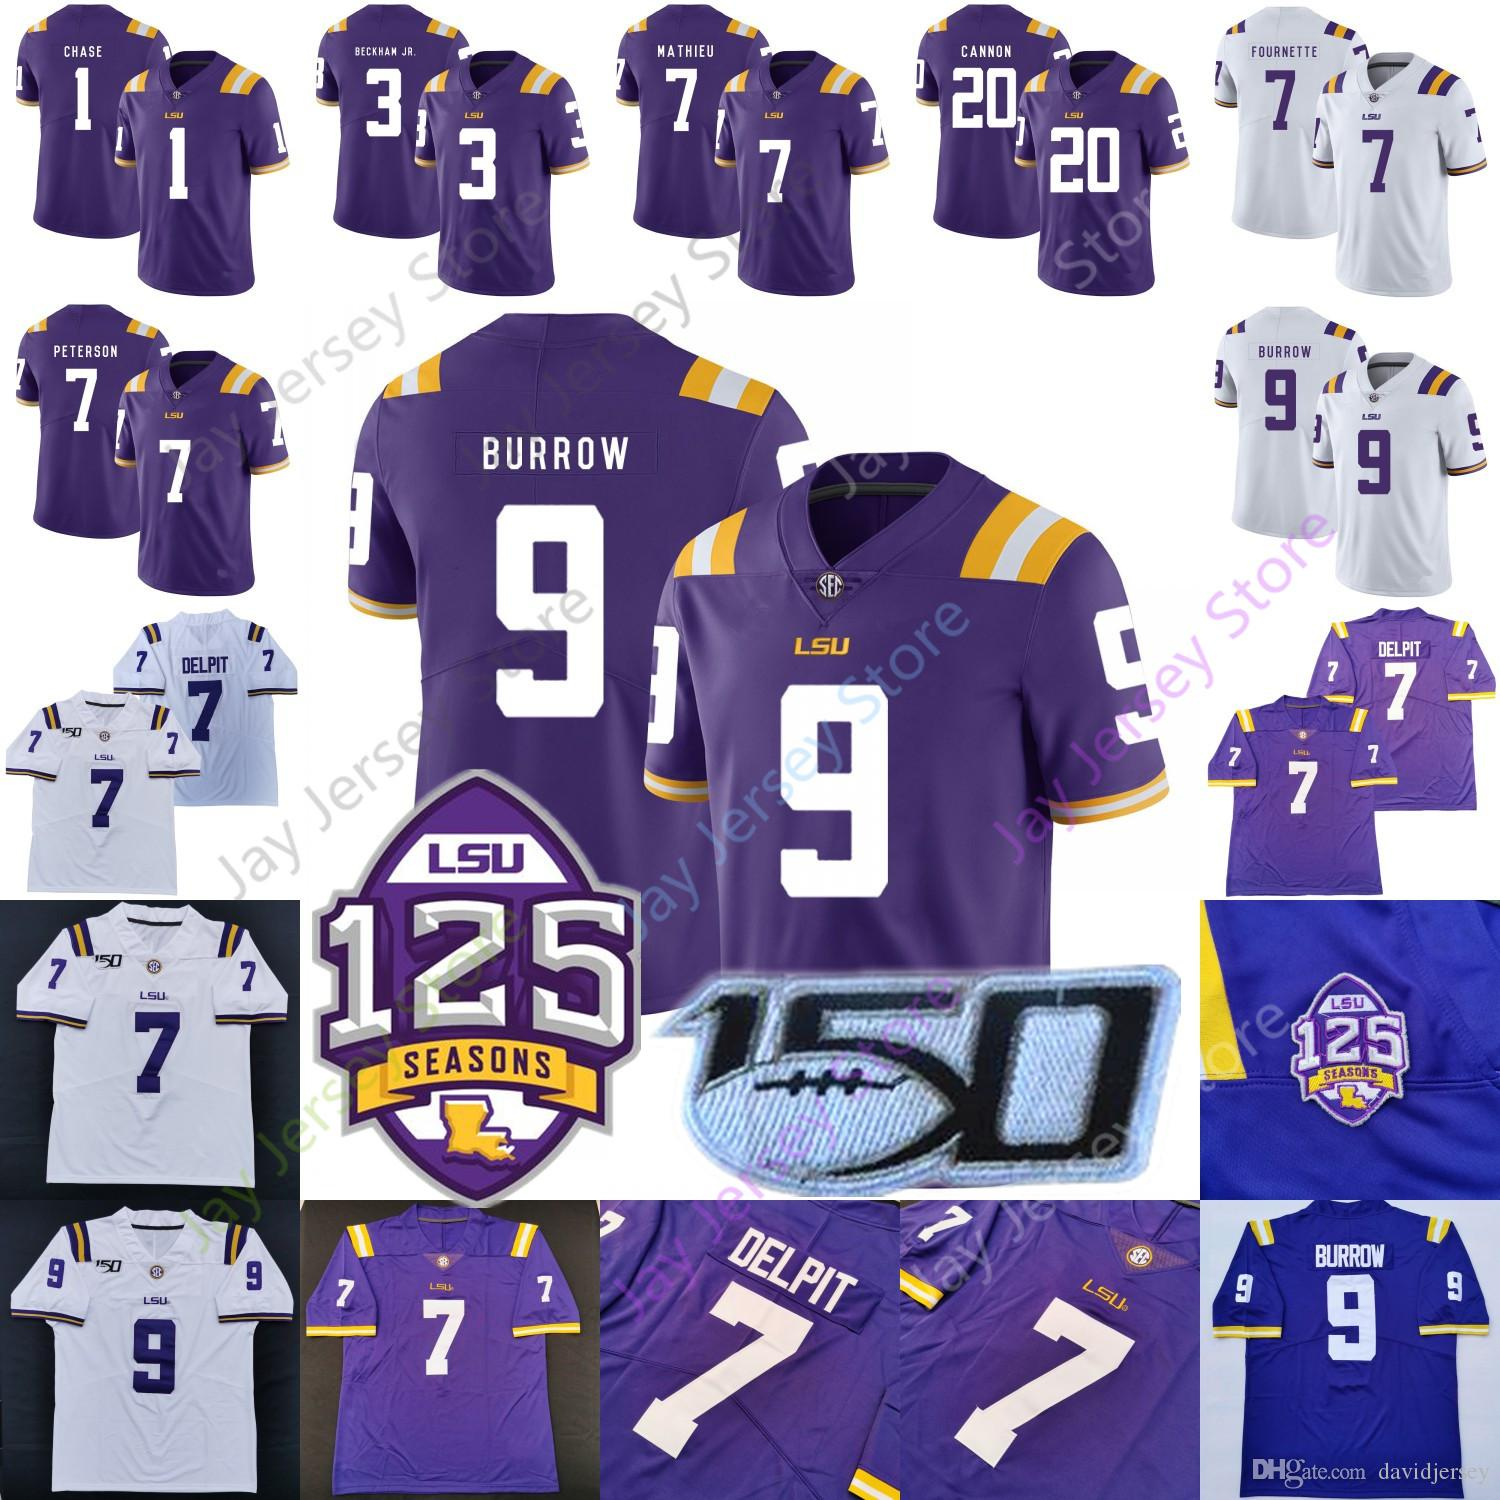 LSU Tigers Football Jersey College Joe Burrow Odell Beckham Jr. Grant Delpit Tyrann Mathieu Leonard Fournette Patrick Peterson Cannon Chase